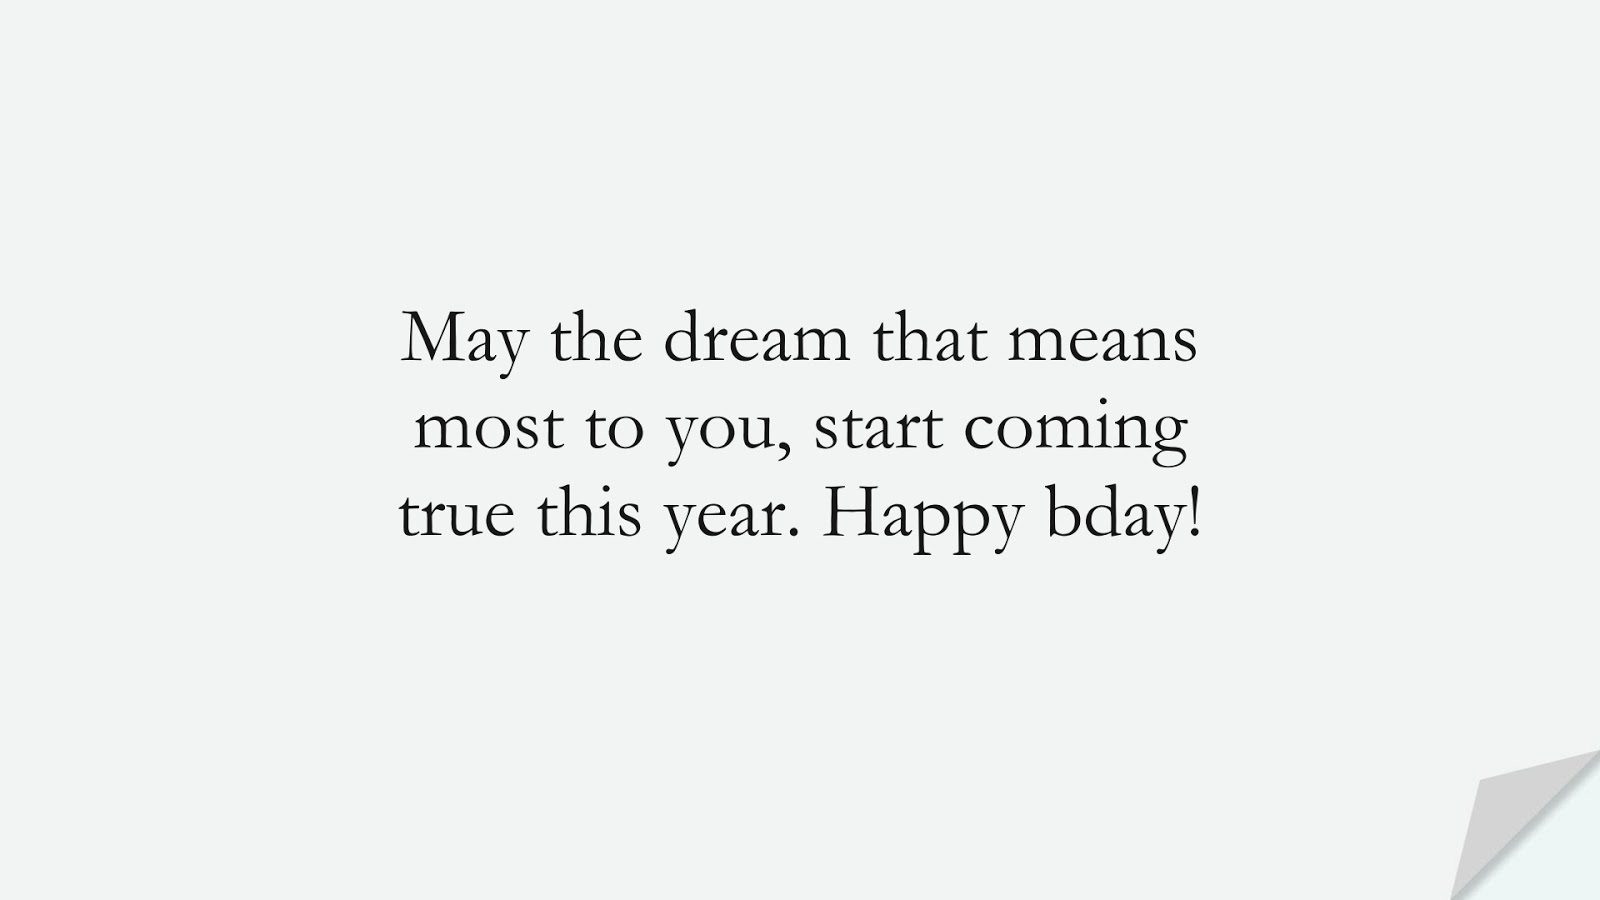 May the dream that means most to you, start coming true this year. Happy bday!FALSE